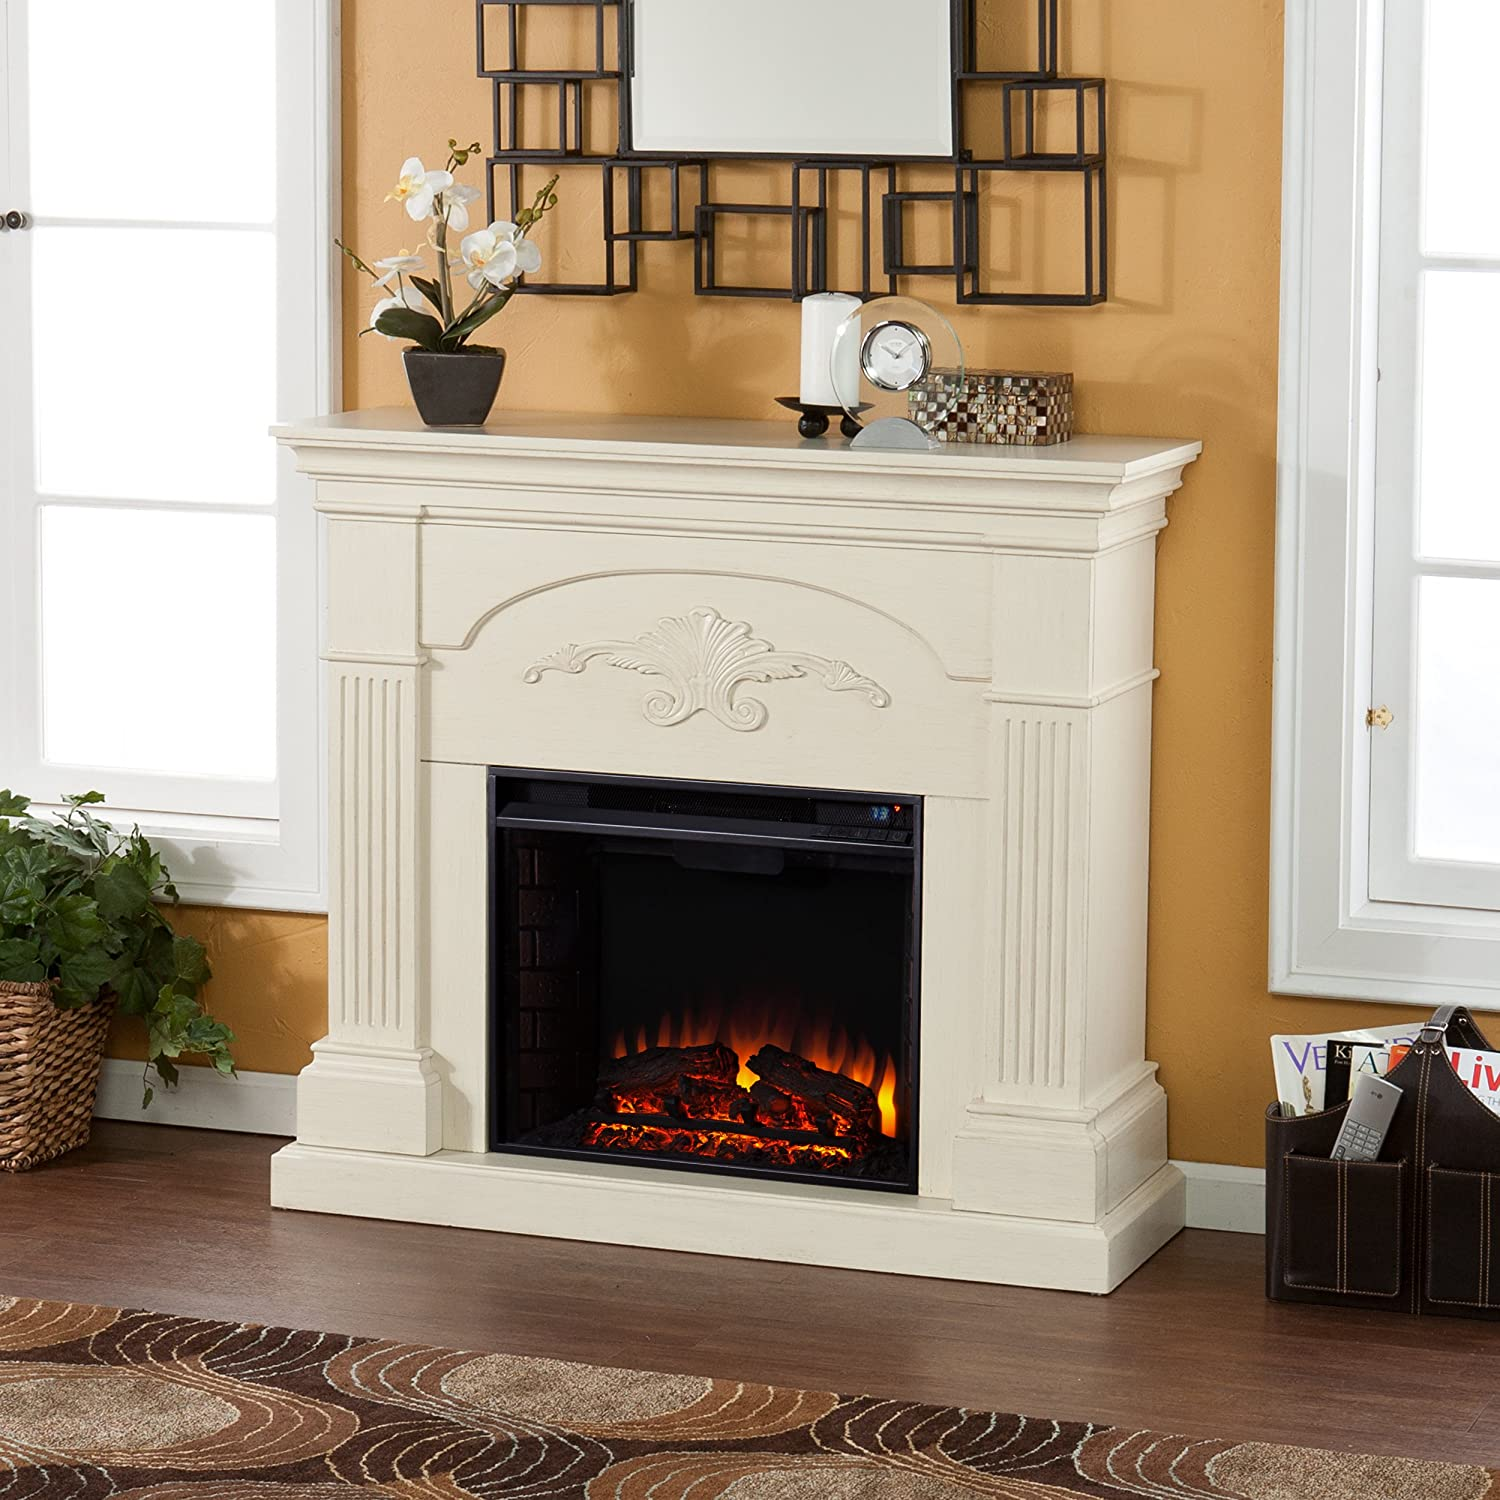 Amazon.com: Sicilian Harvest Electric Fireplace - Ivory: Kitchen & Dining